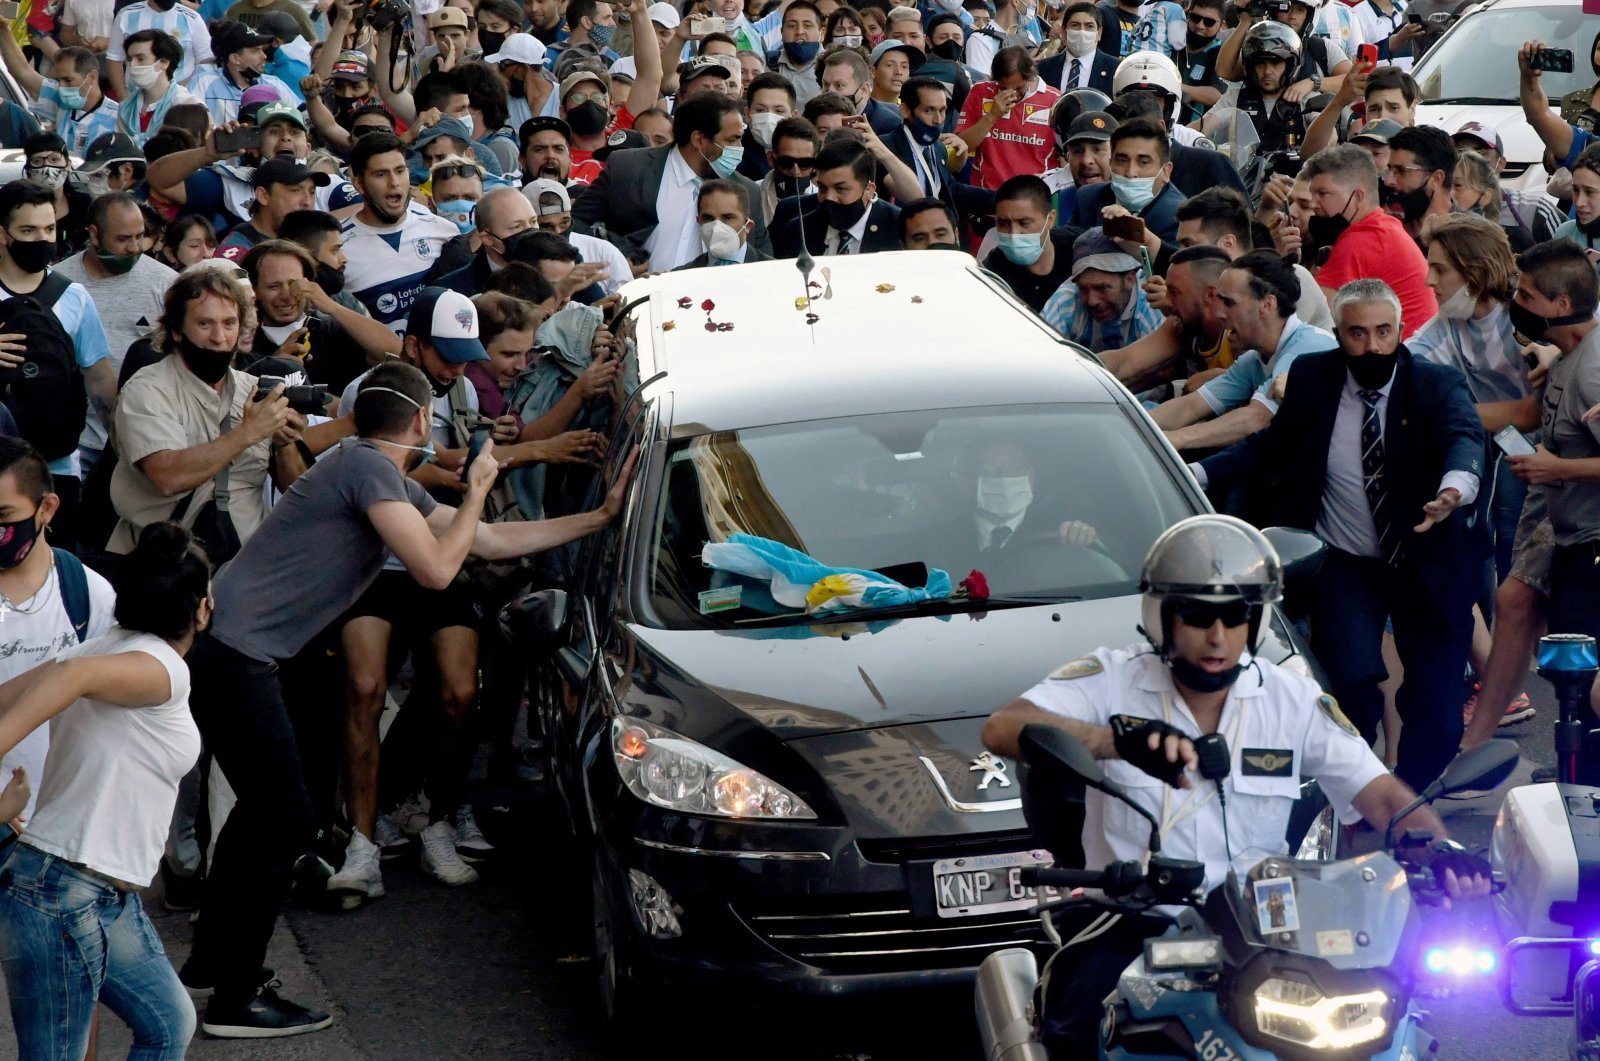 Photo released by Telam showing fans crowding next to the hearse carrying the late Argentine football legend Diego Armando Maradona while leaving Casa Rosada presidential palace to the cemetery, in Buenos Aires, Nov. 26, 2020. (Telam via AFP)